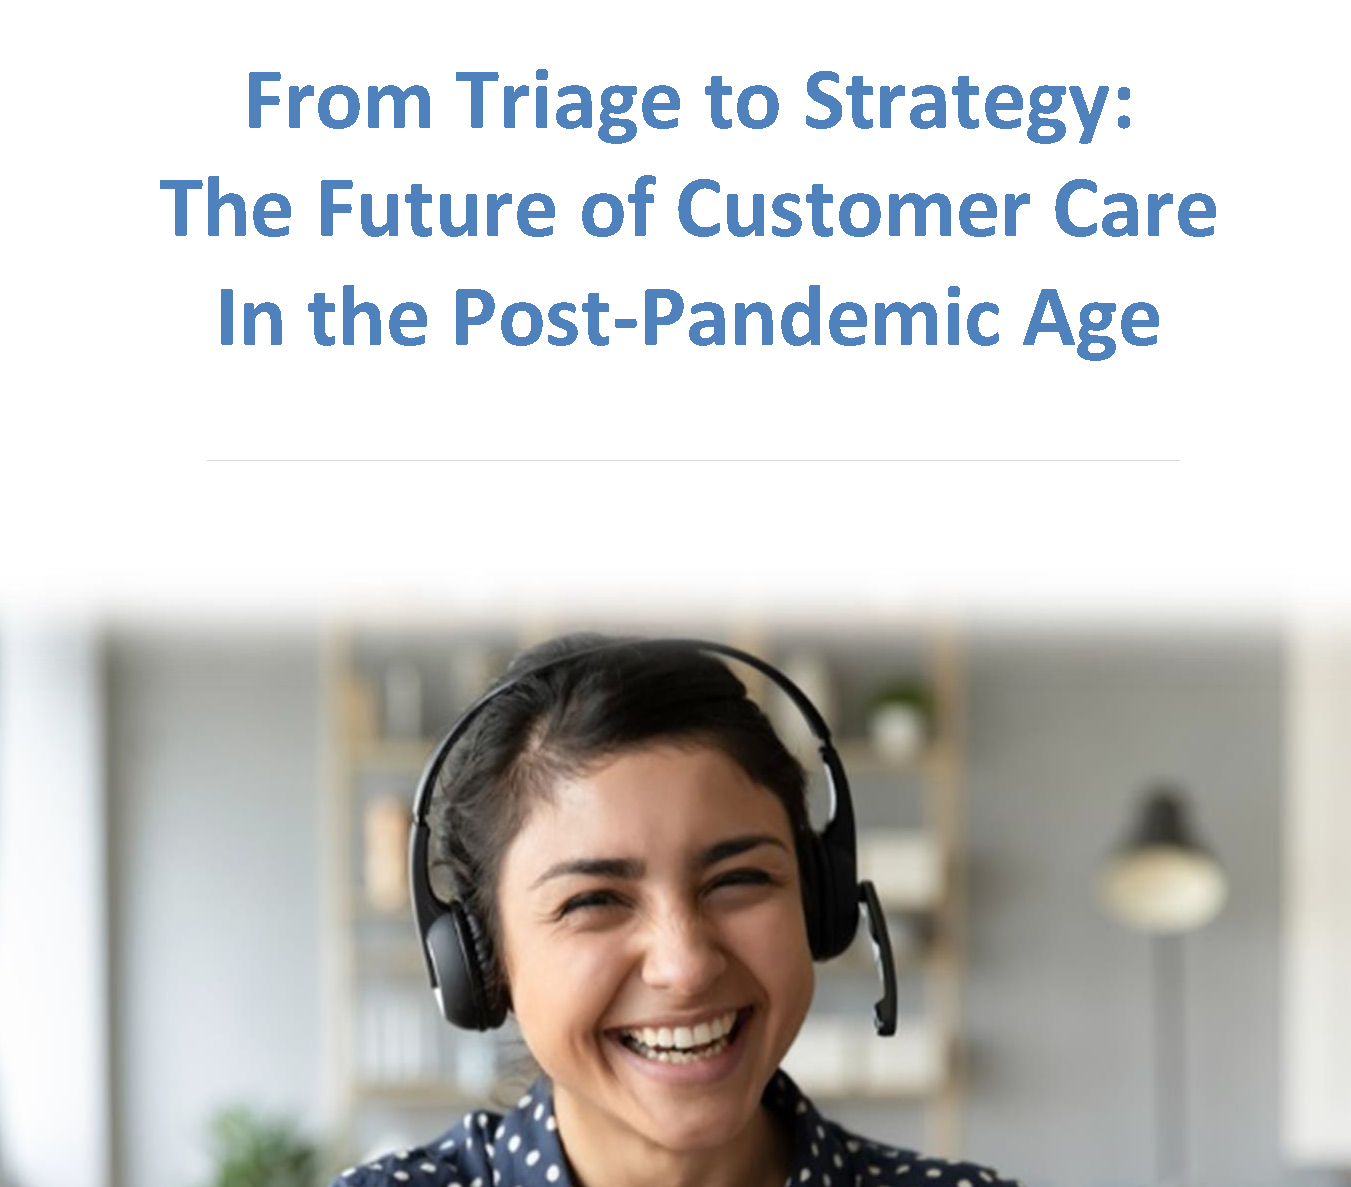 From Triage to Strategy: The Future of Customer Care In the Post-Pandemic Age